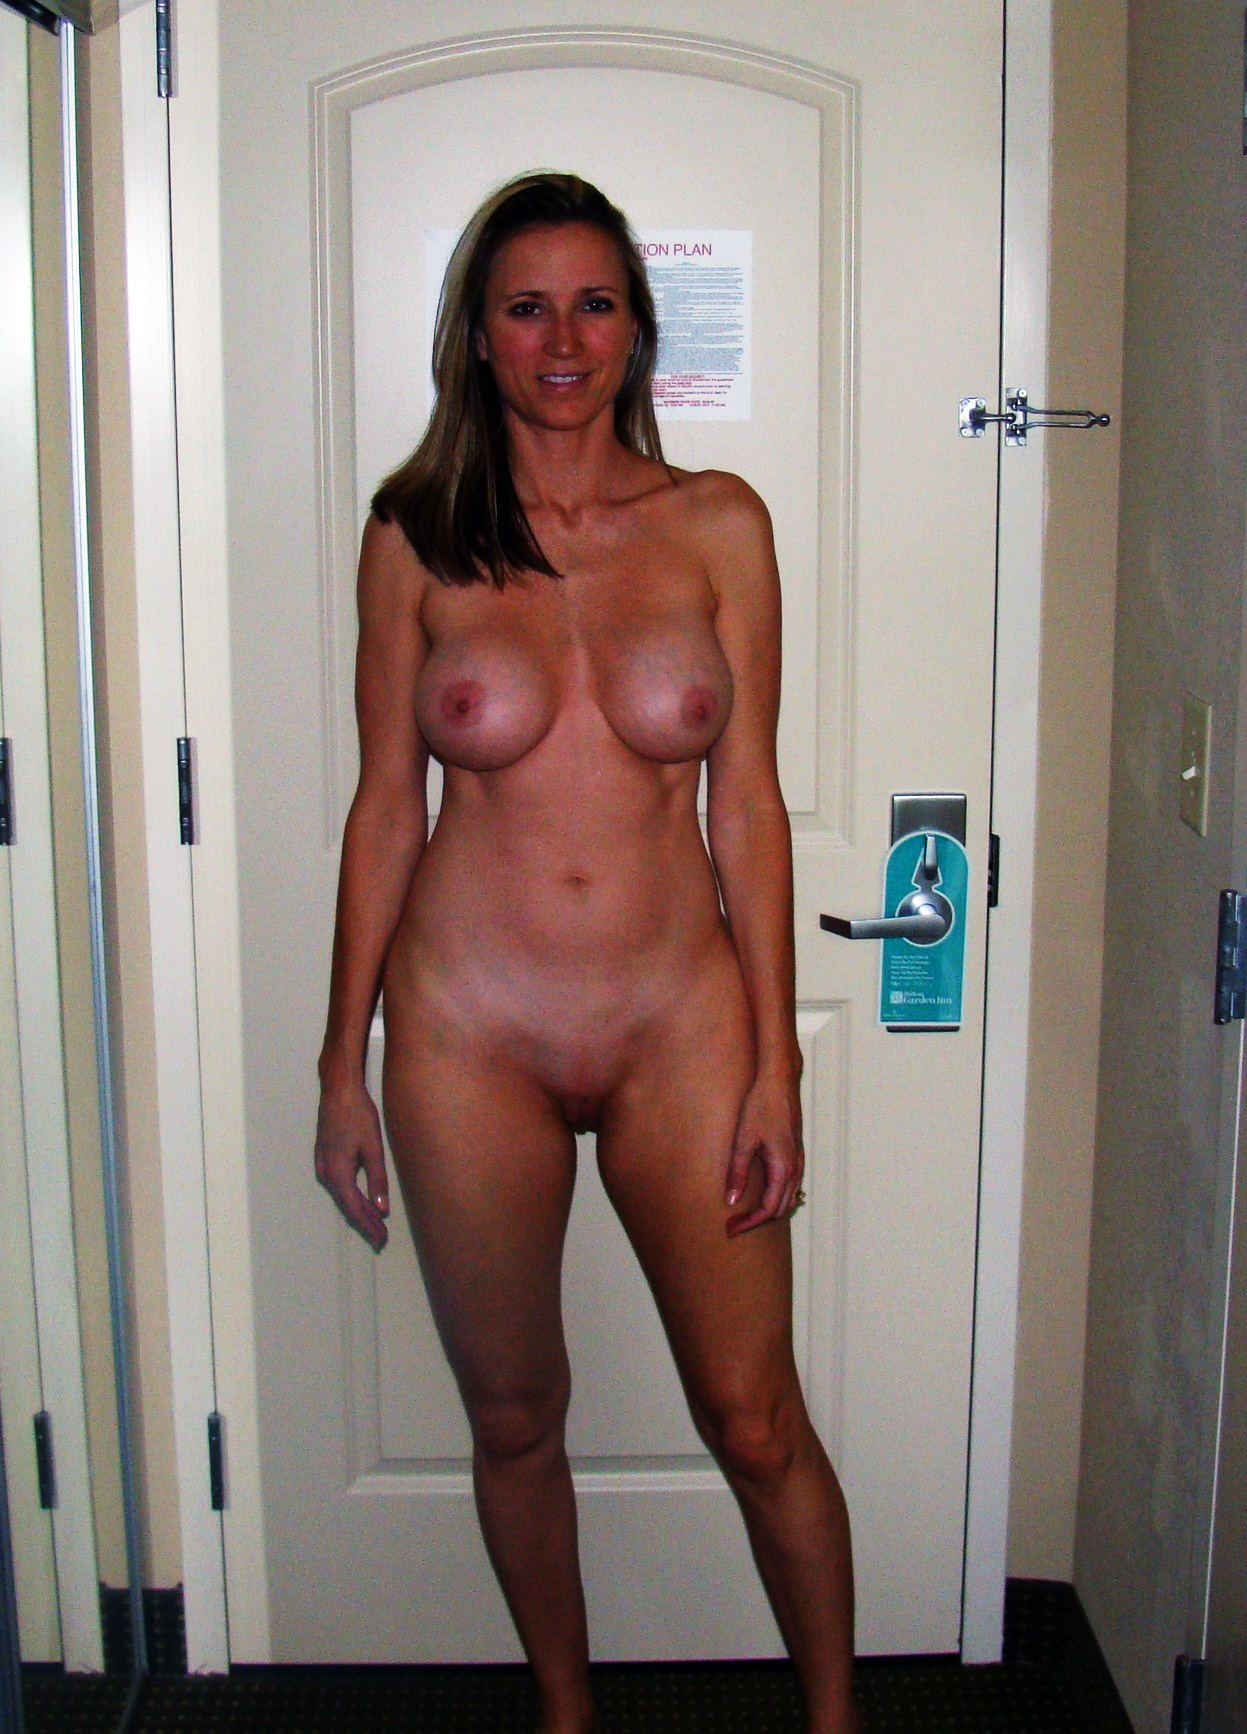 Nude exhibitionist powered by phpbb apologise